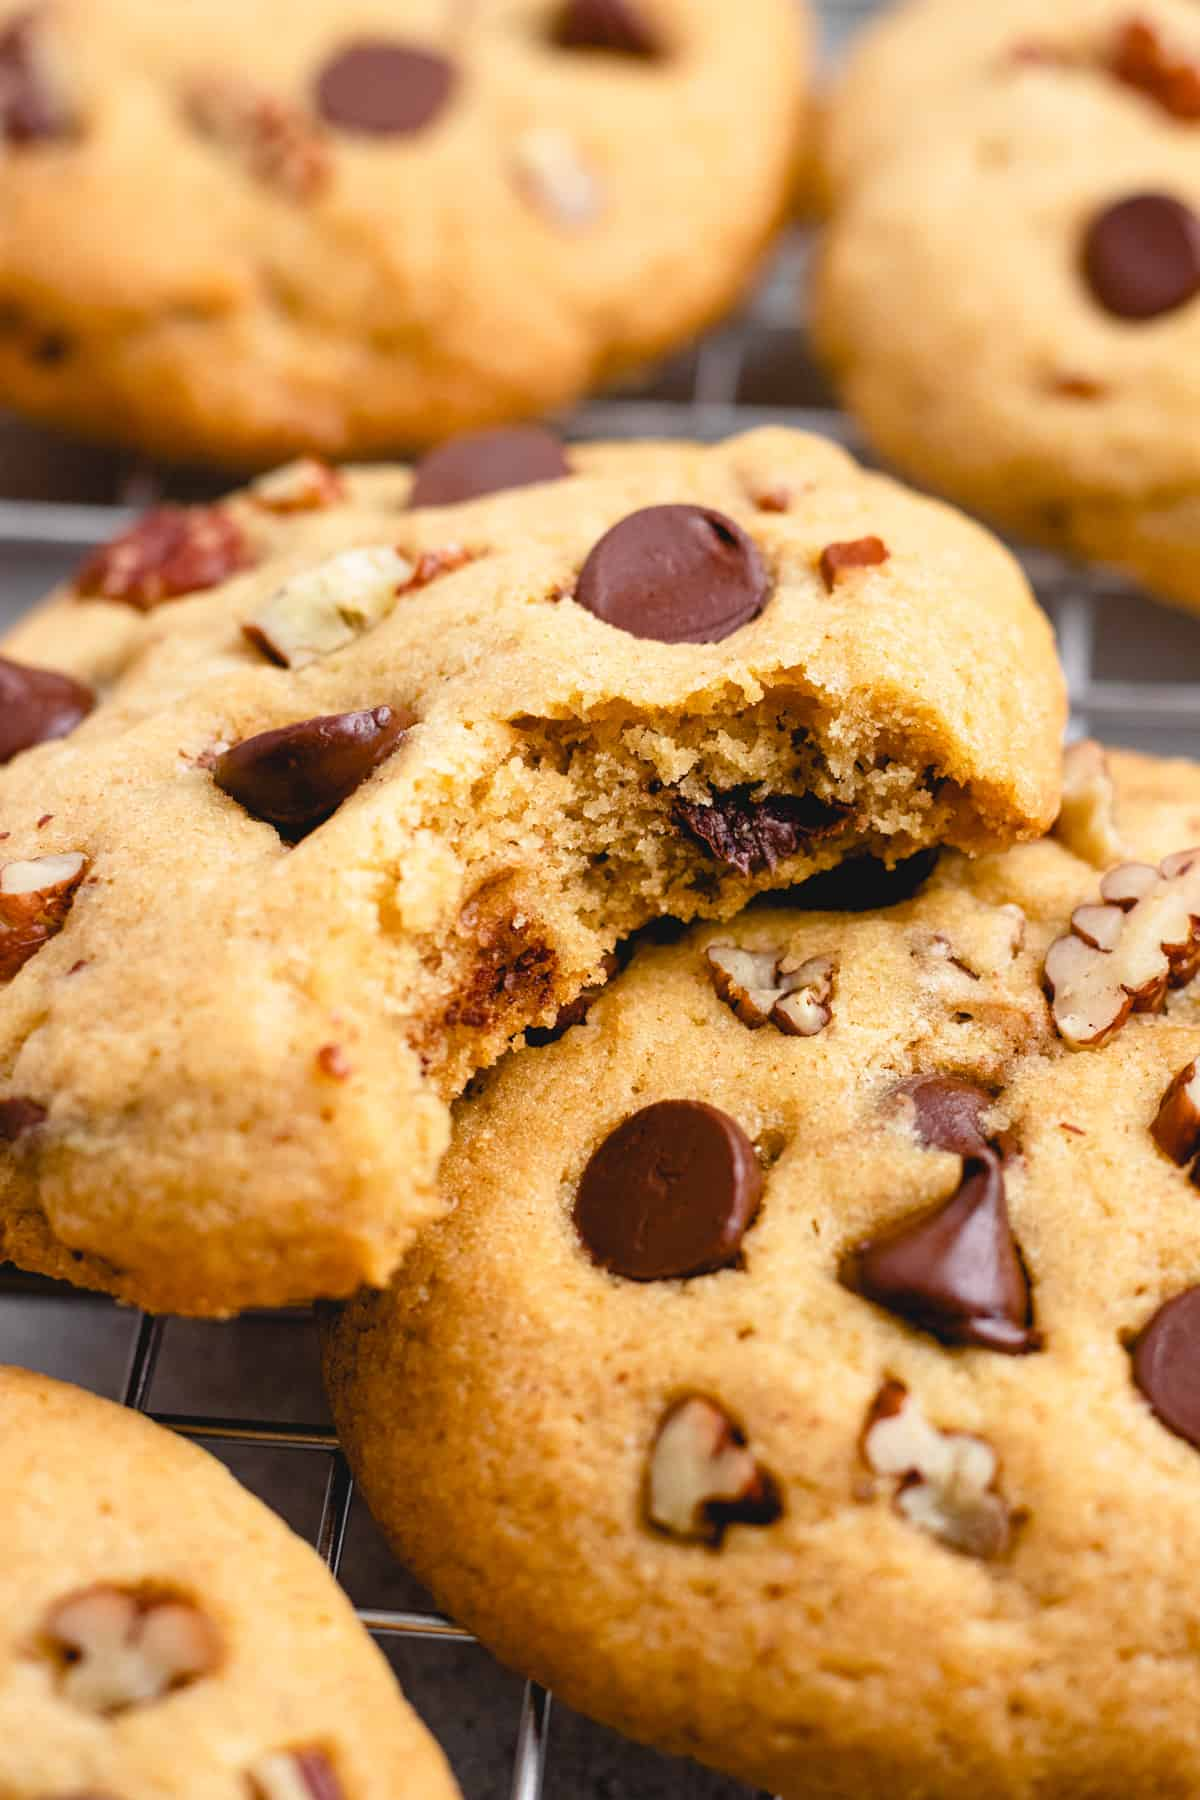 A close up shot of Pecan Chocolate Chip Cookies on a wire rack.